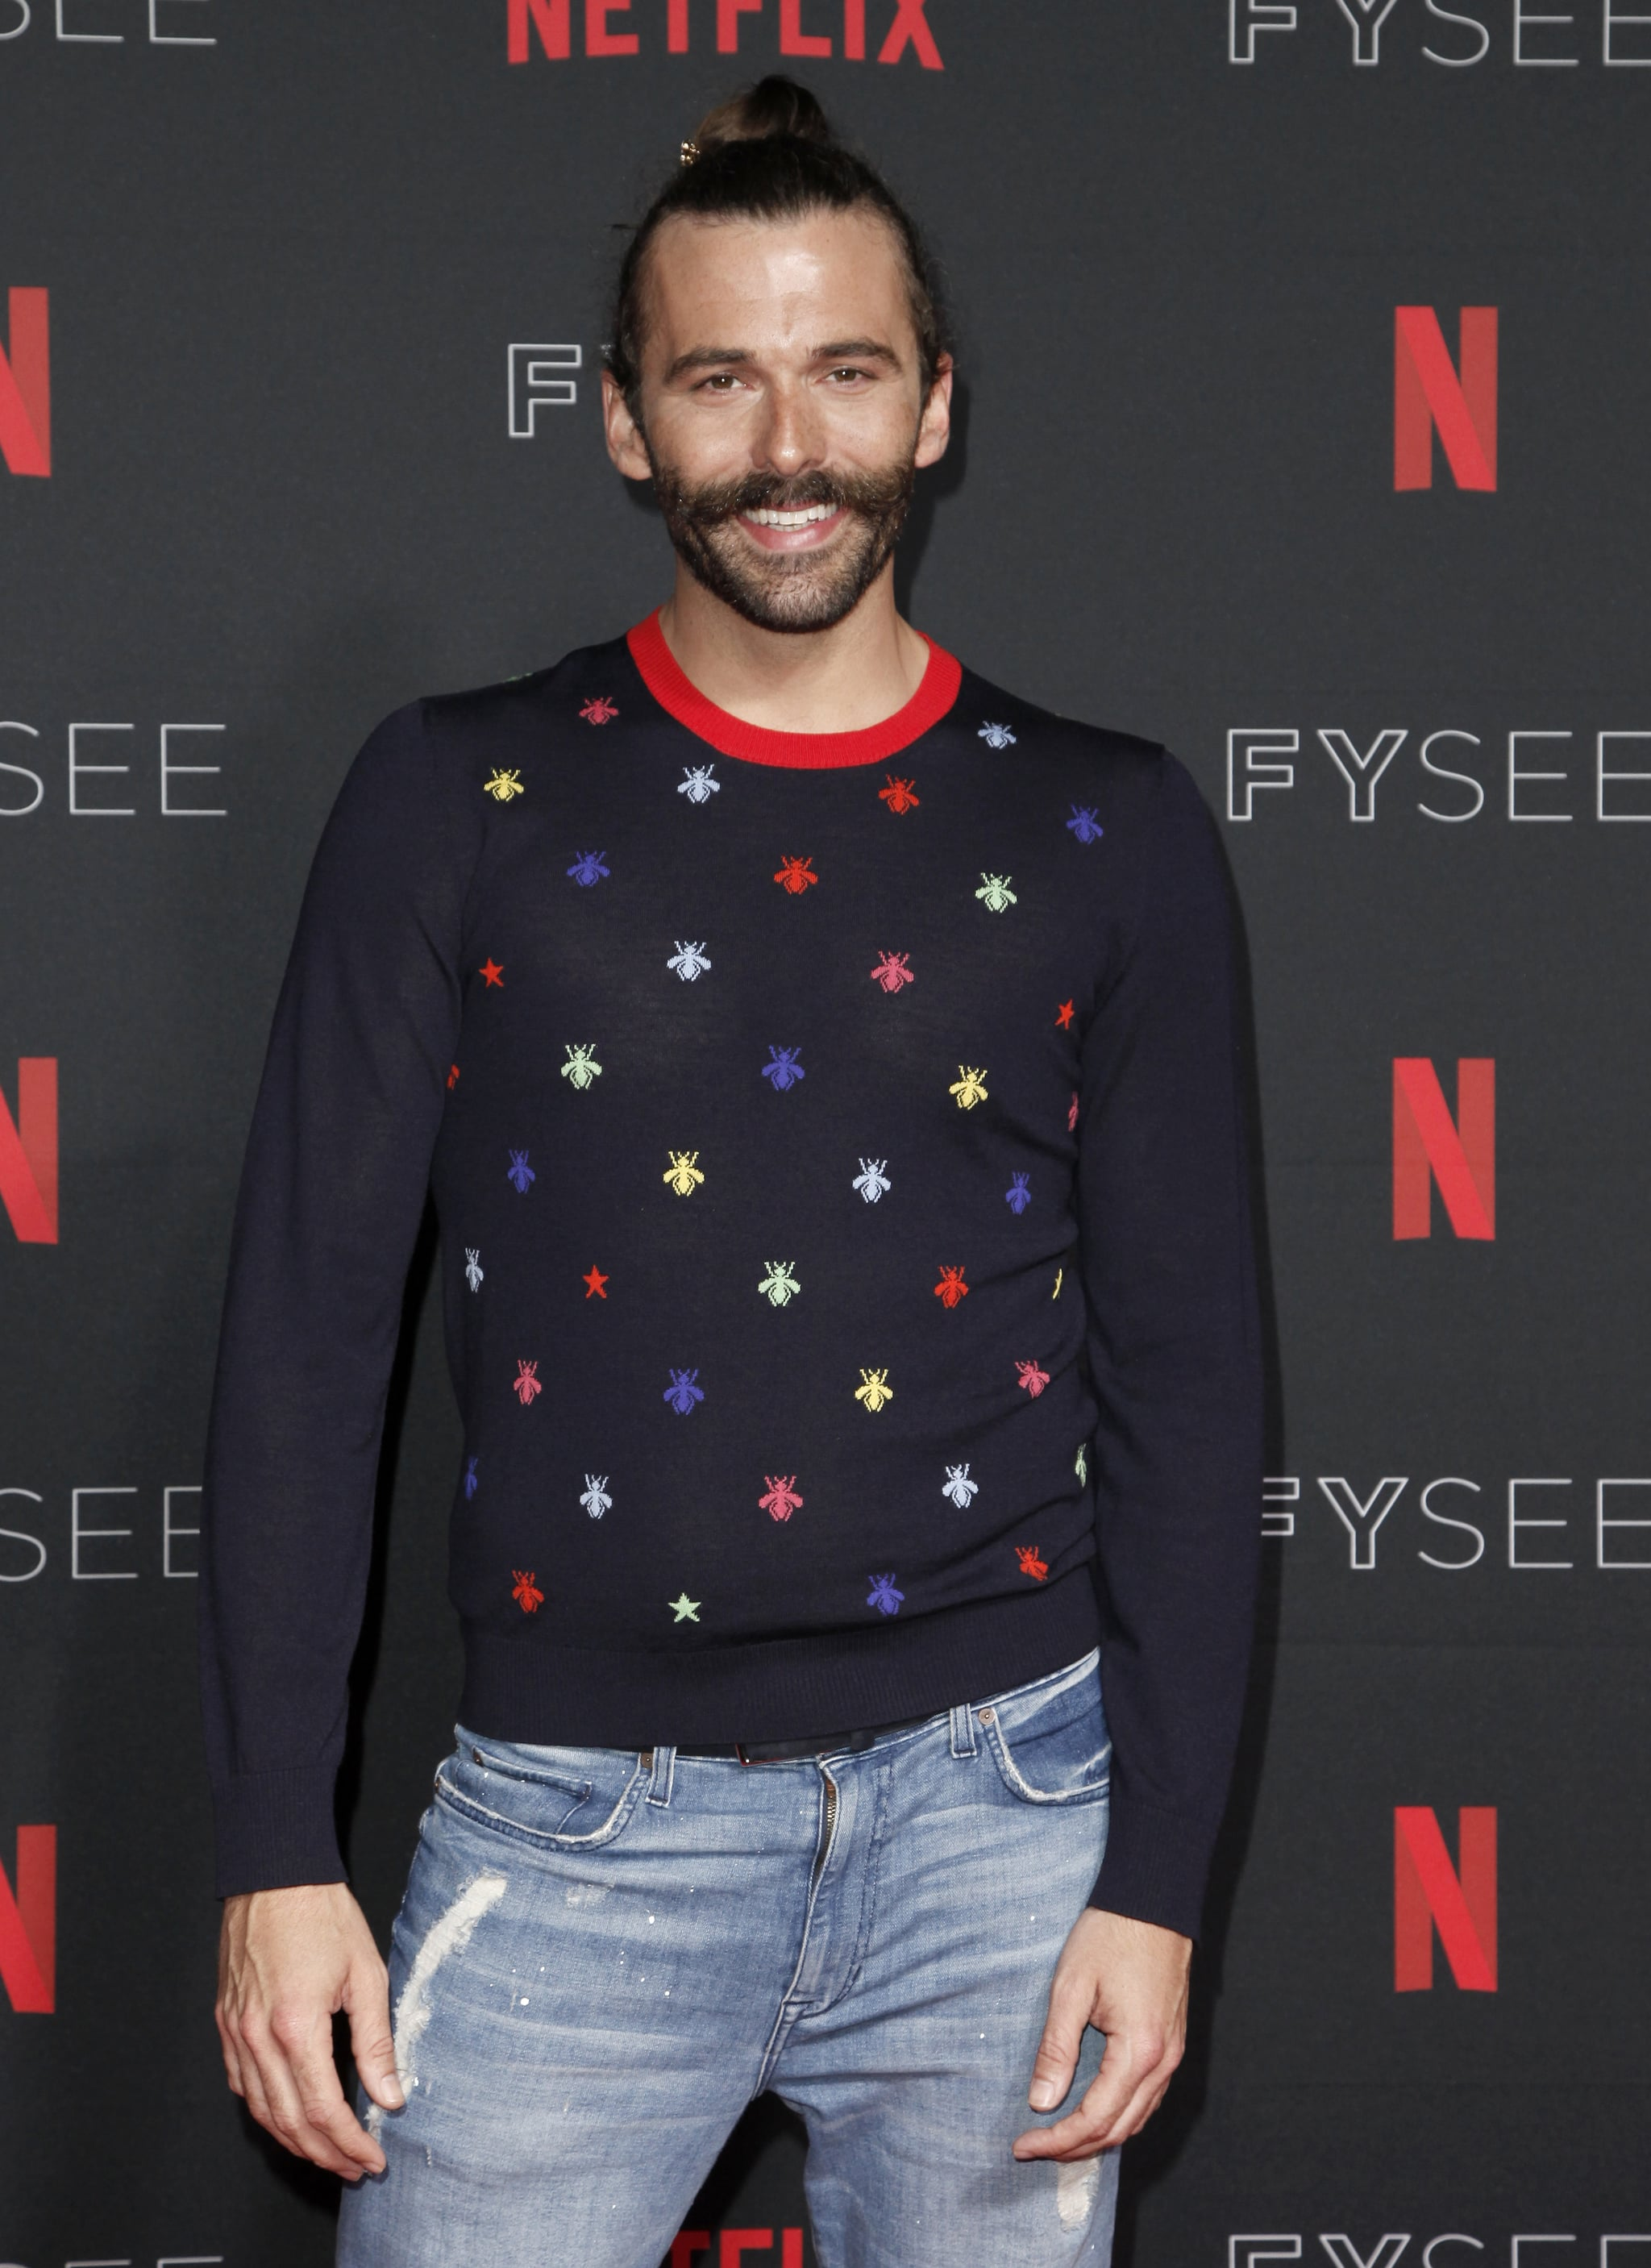 LOS ANGELES, CA - MAY 31:  Jonathan Van Ness attends the NETFLIXFYSEE event for 'Queer Eye' at Netflix FYSEE At Raleigh Studios on May 31, 2018 in Los Angeles, California.  (Photo by Tibrina Hobson/WireImage)